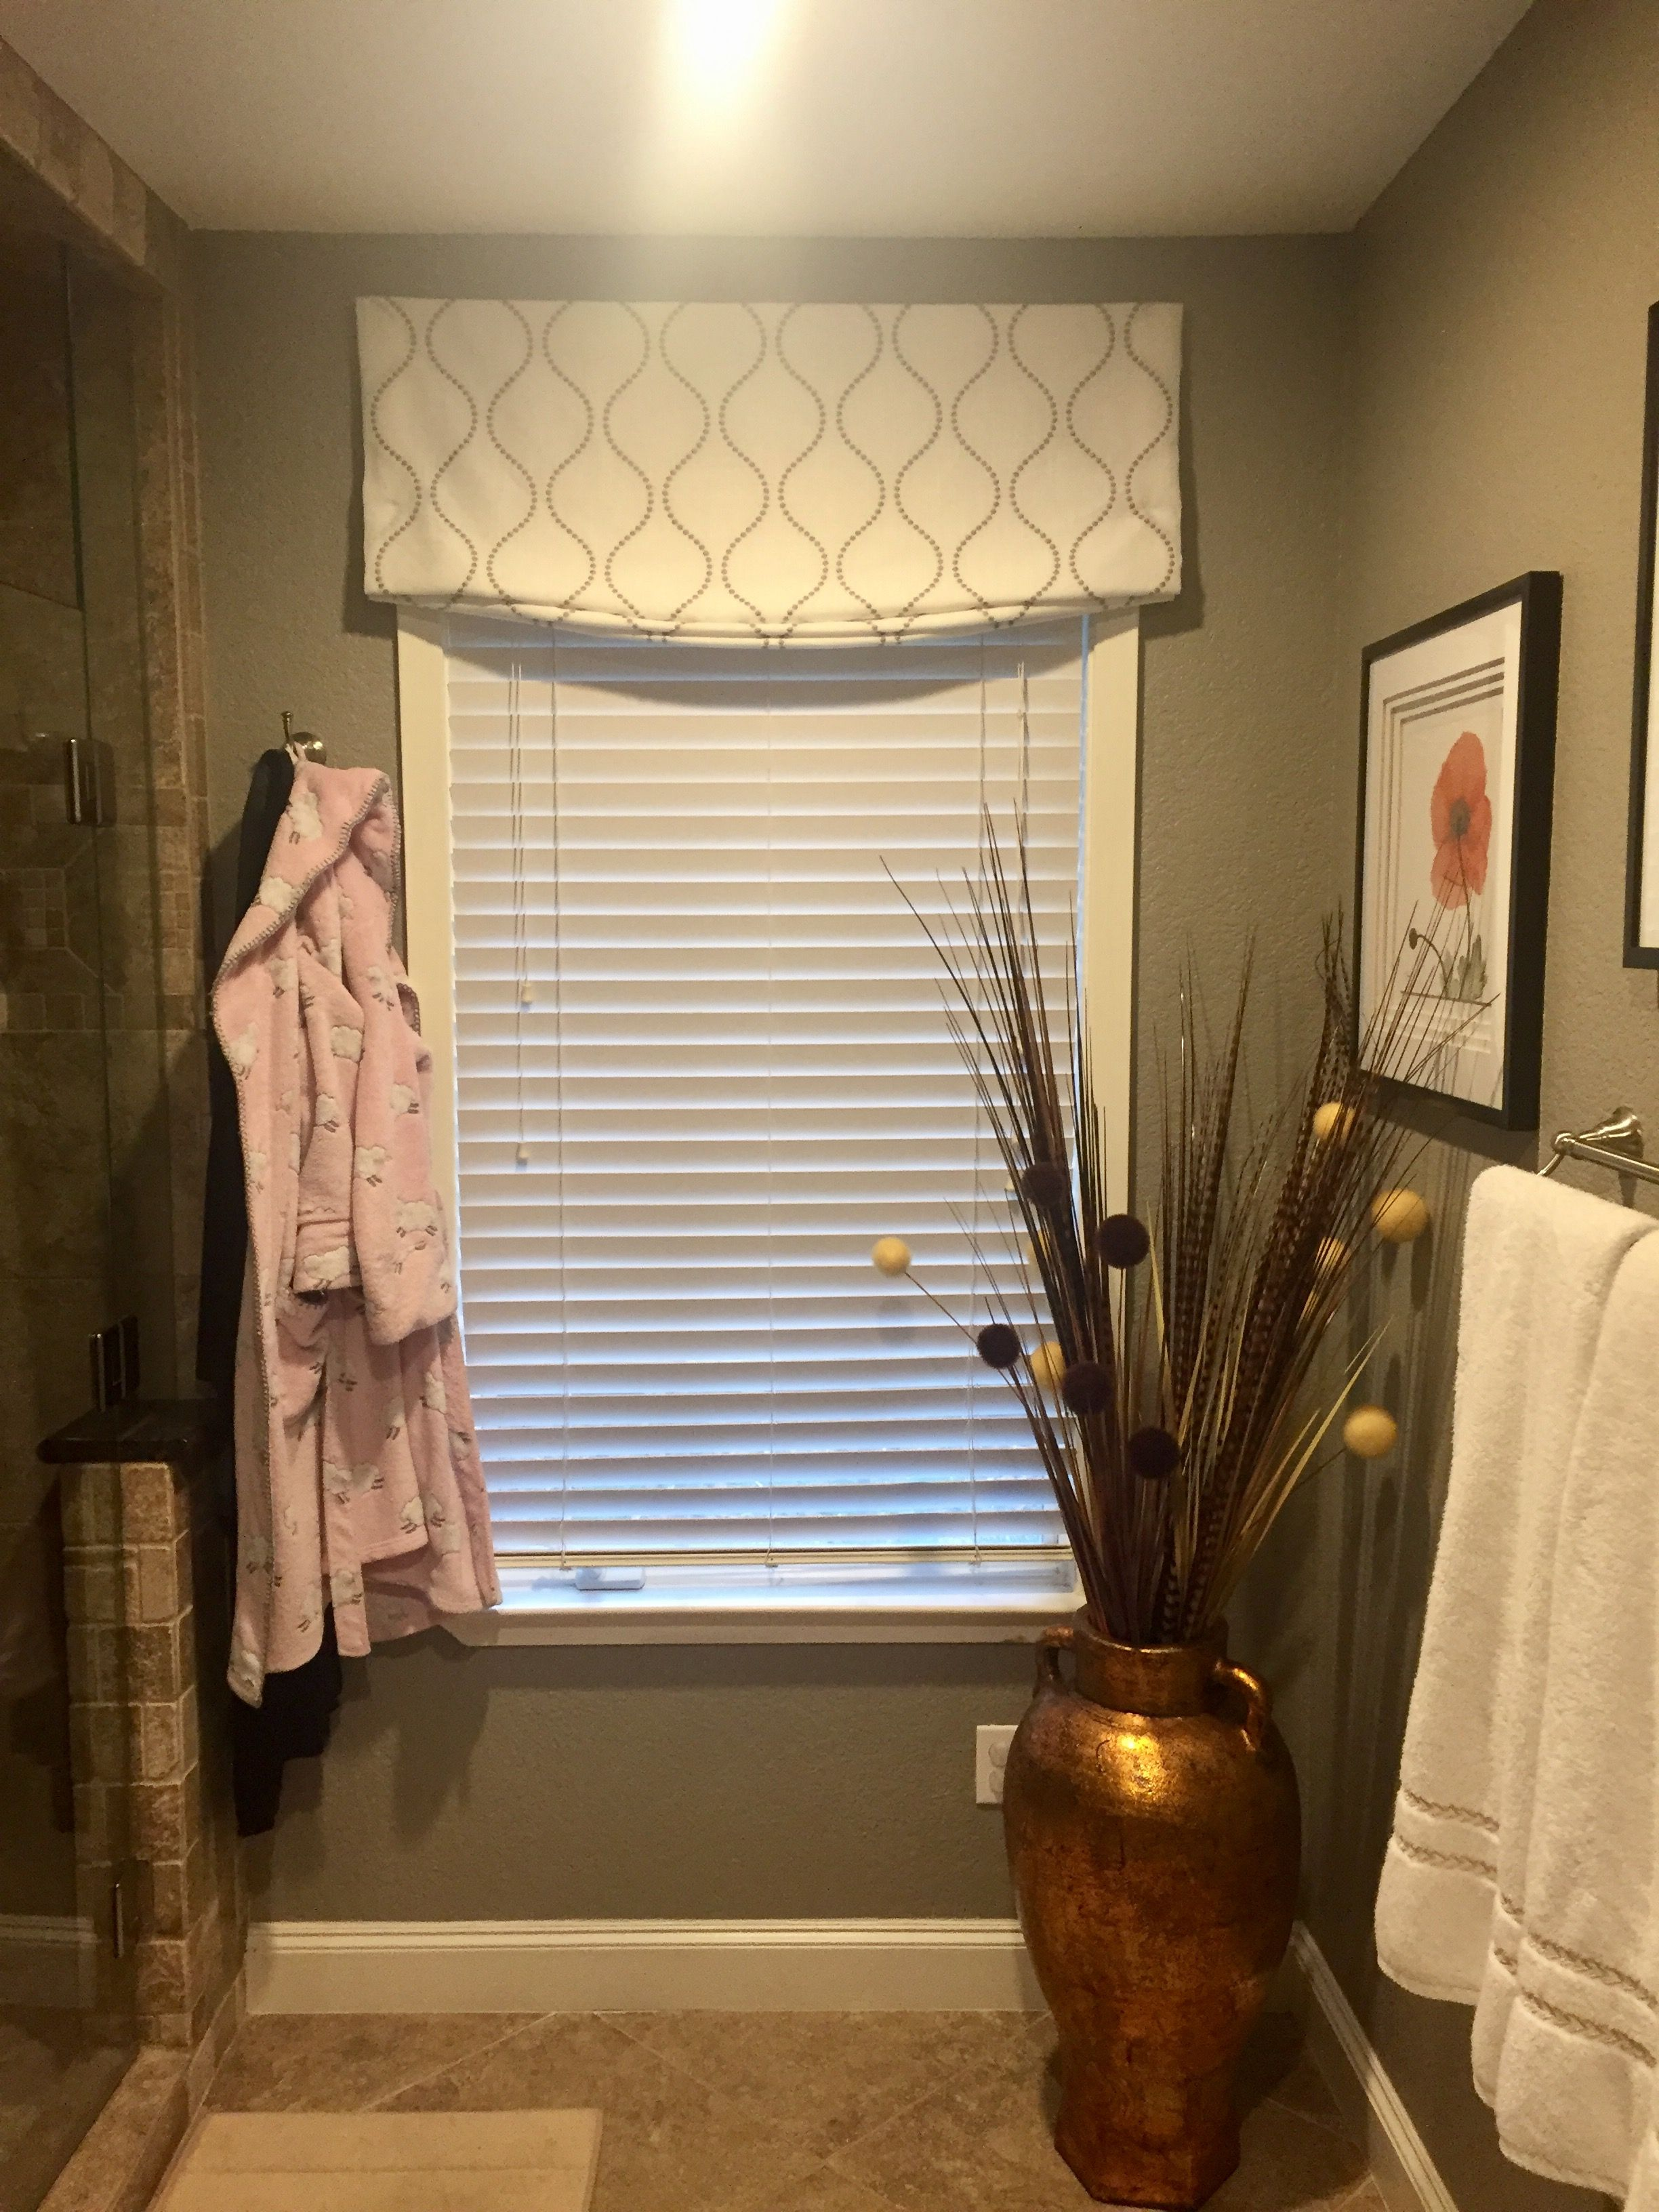 Faux Roman Shade Valance Furnished And Installed By Kites